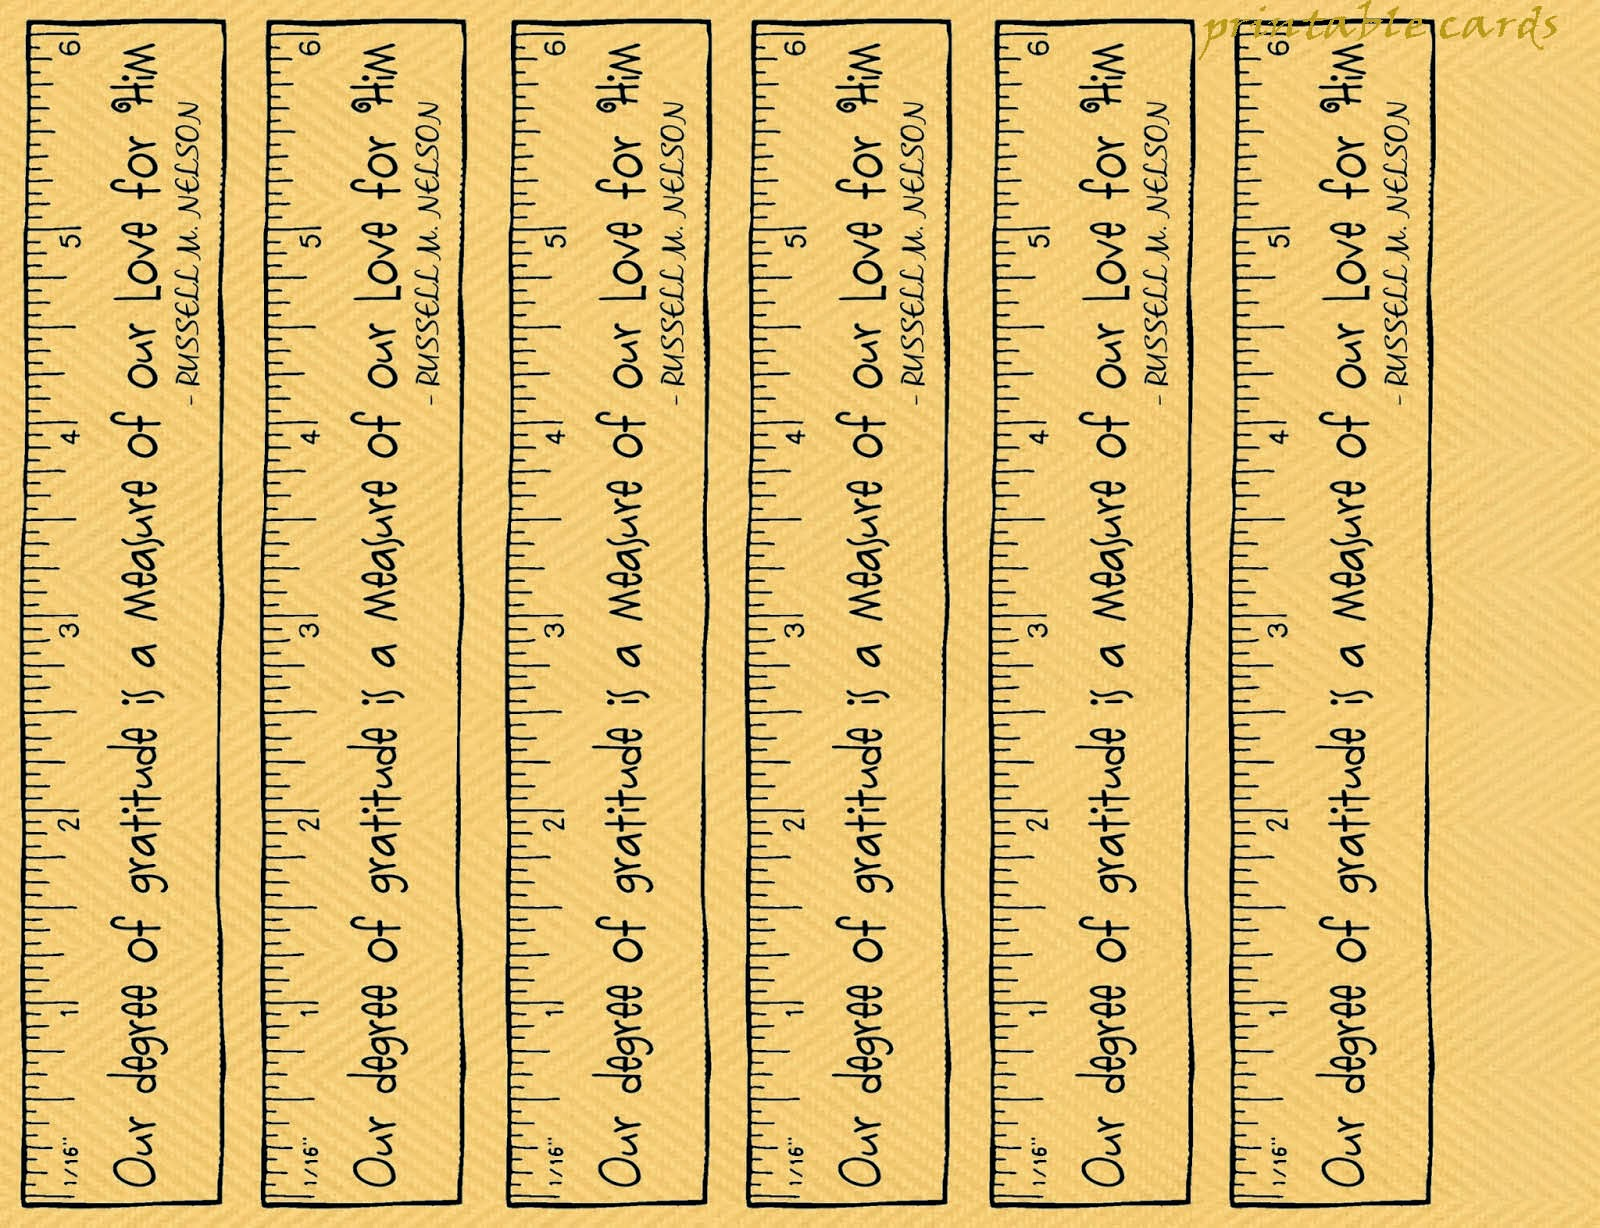 20 inch ruler actual size - yelom.digitalsite.co